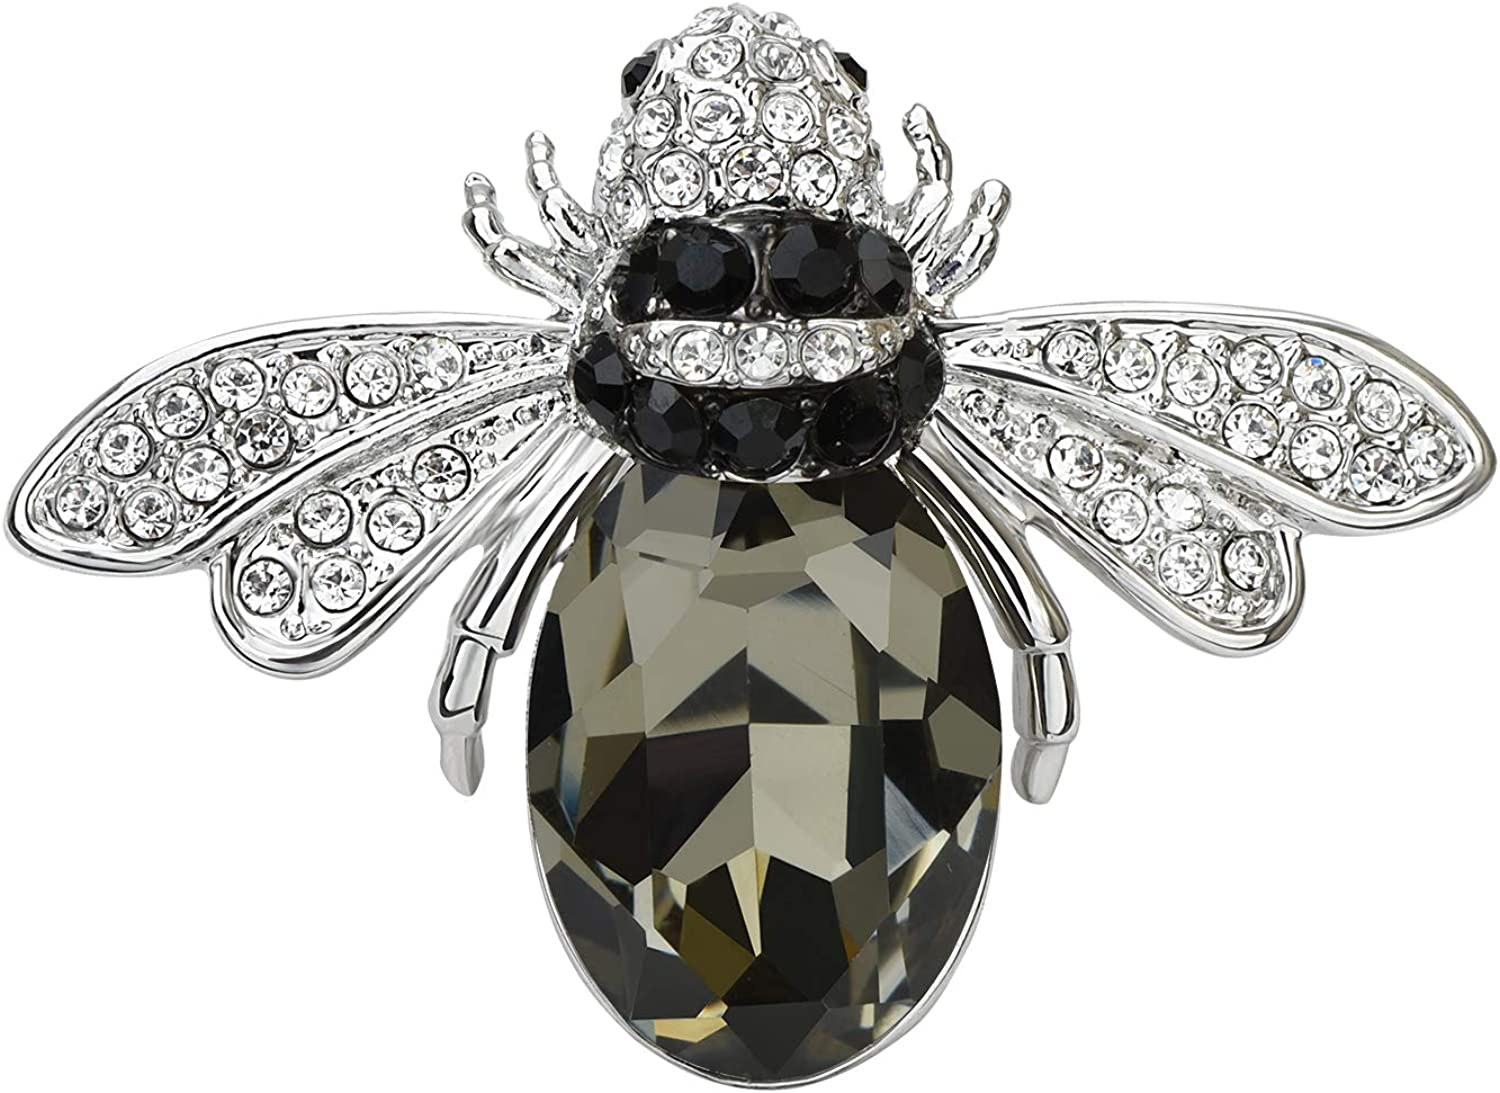 Lovely Crystal Bumble Honey Bee Insect Brooch Pins Collar Pin Lapel Pin Costume Jewelry for Women